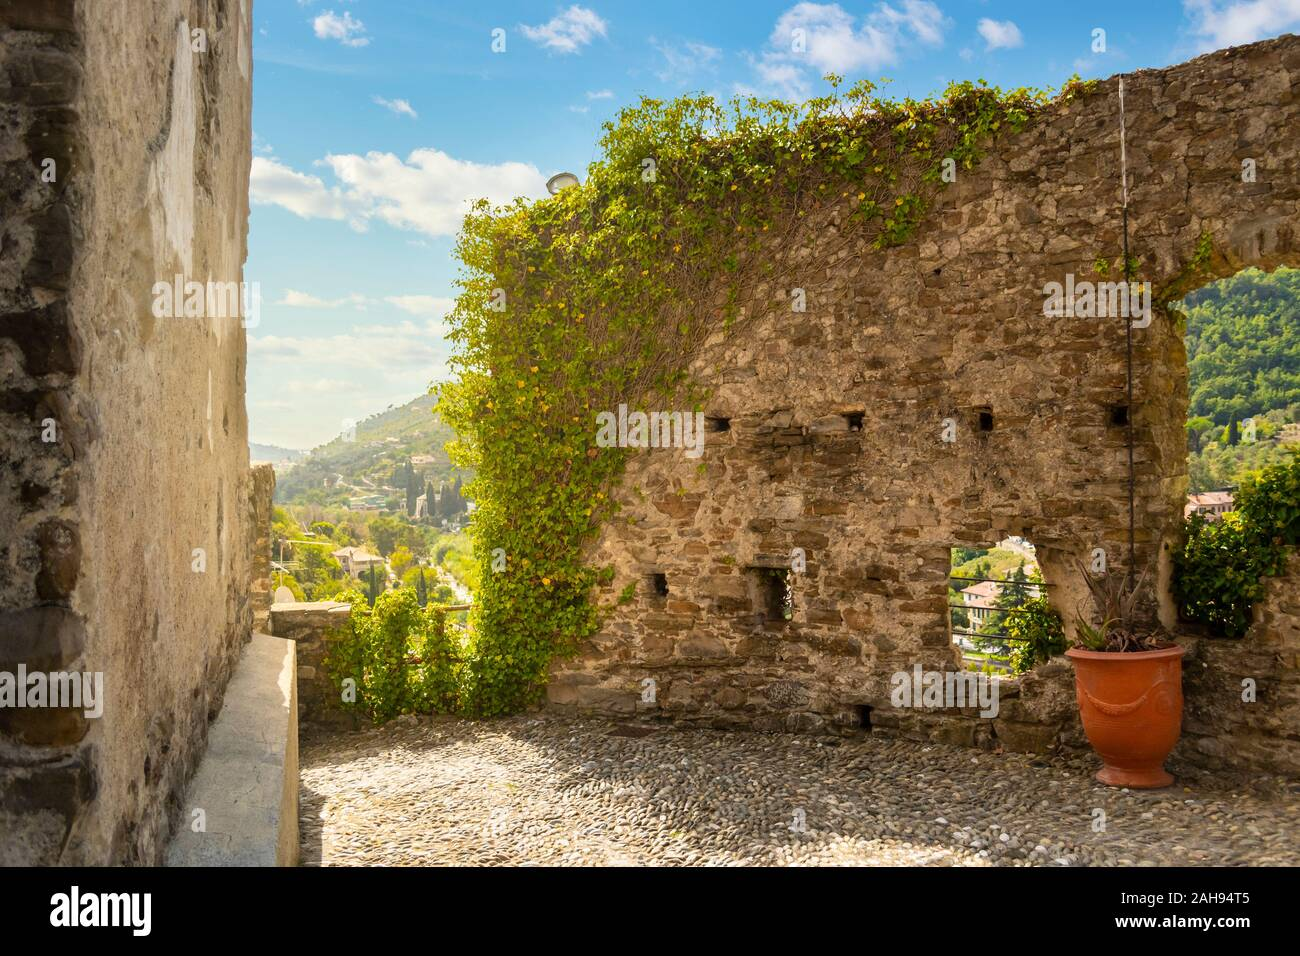 A courtyard with views of the Ligurian mountains and ancient wall covered with ivy at the top of the Dolceacqua Castle in Italy Stock Photo